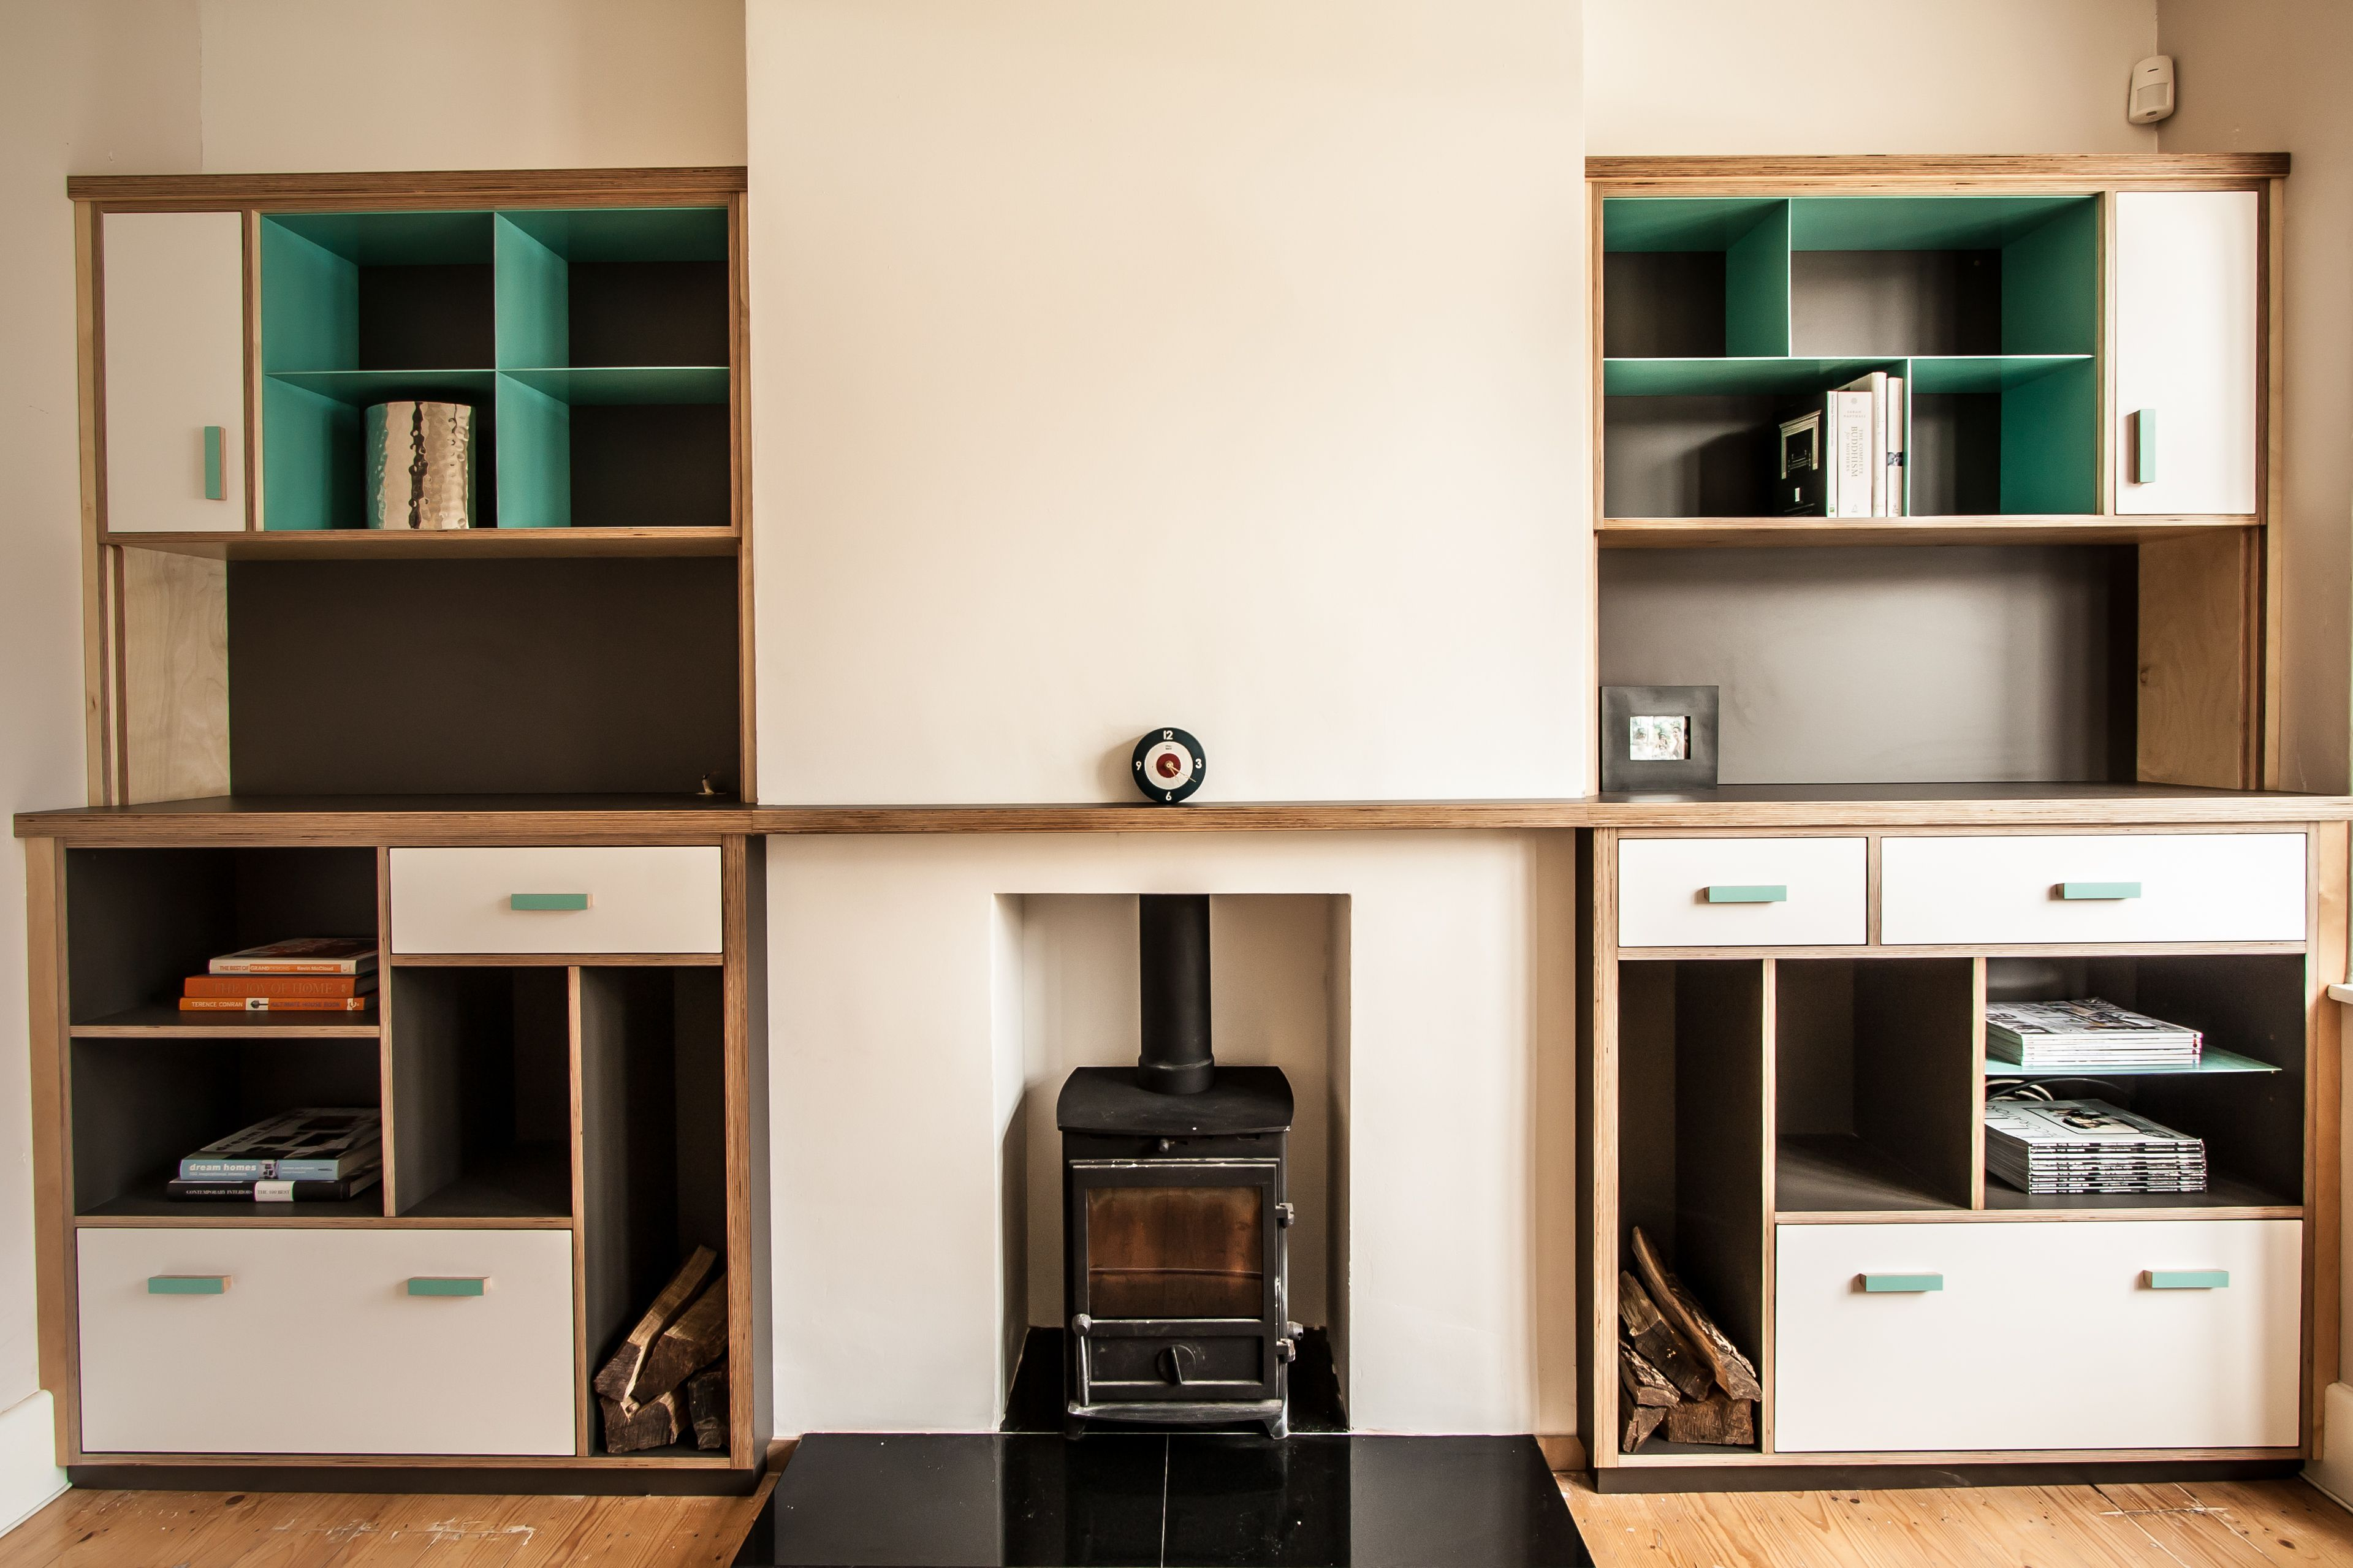 Birch Ply Wall Alcove Unit, With Horizontal Shelf Continuing Across